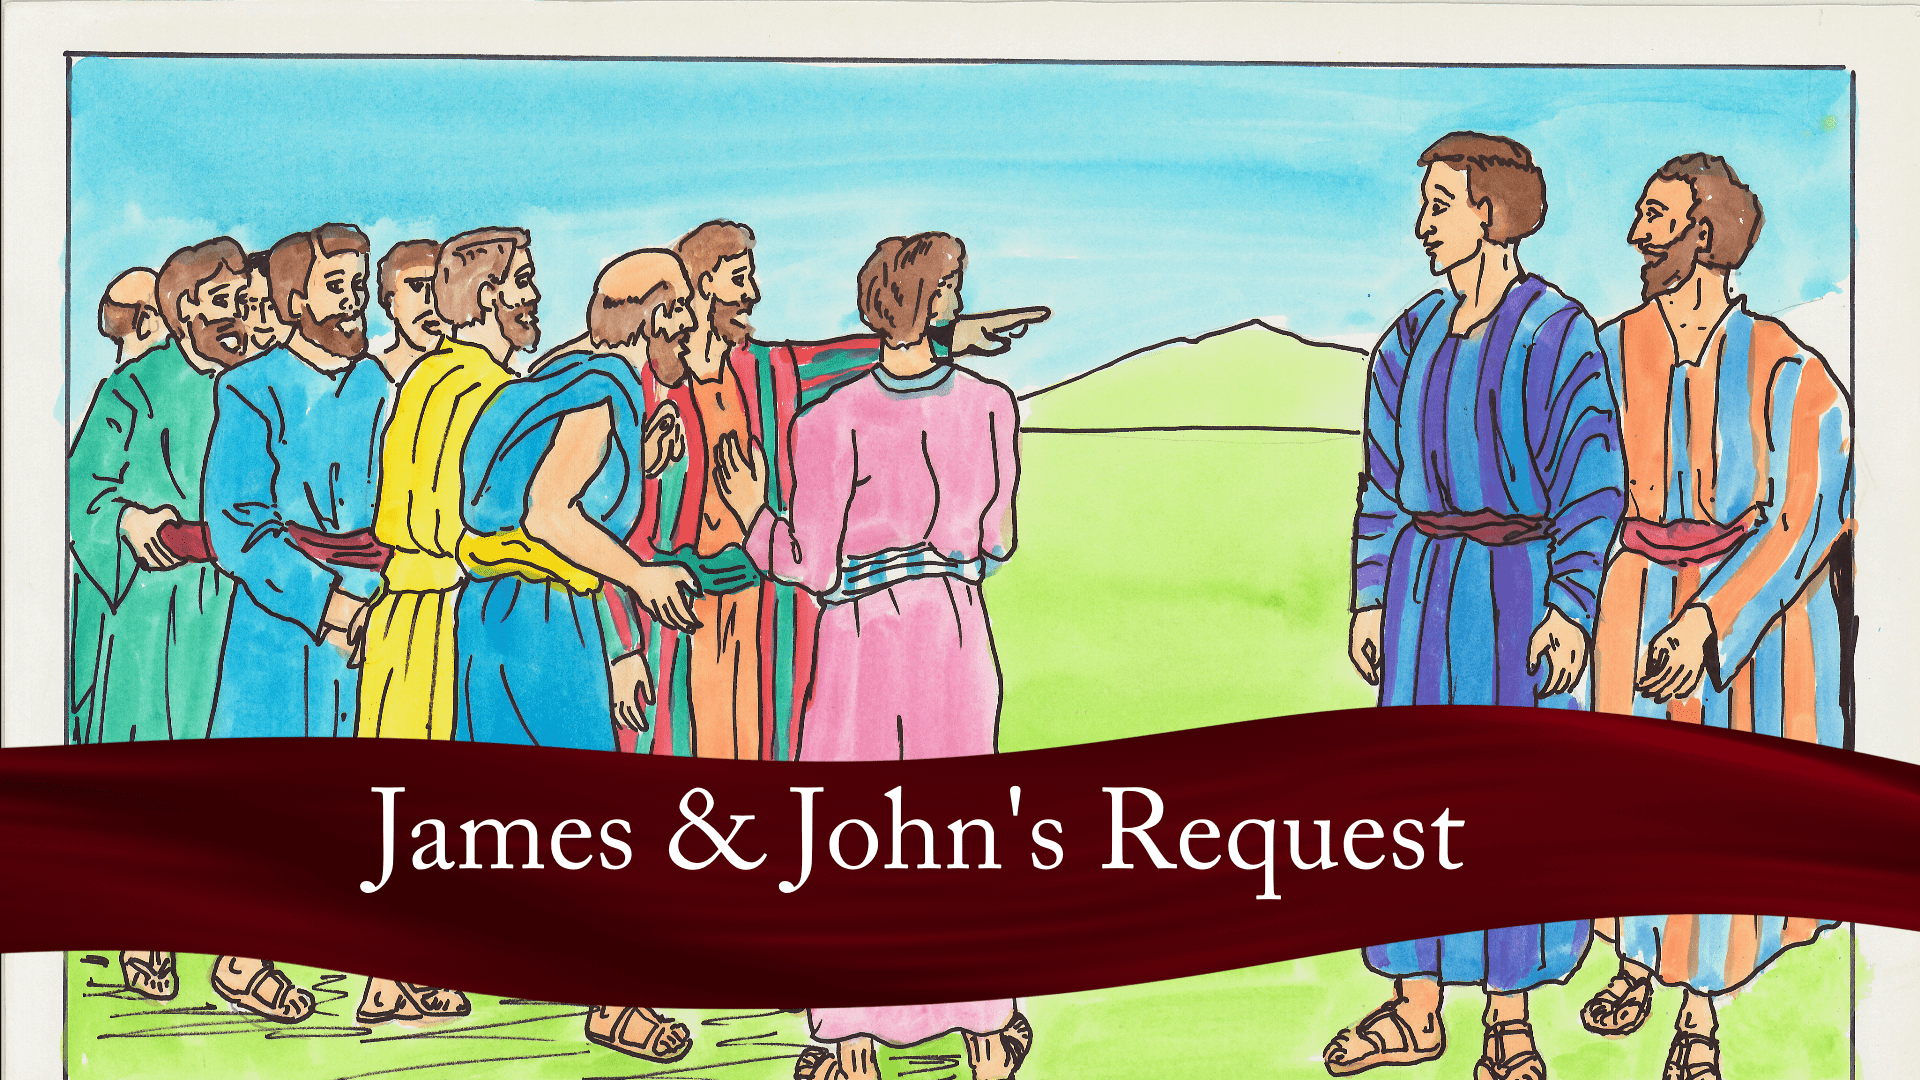 James & John's Request